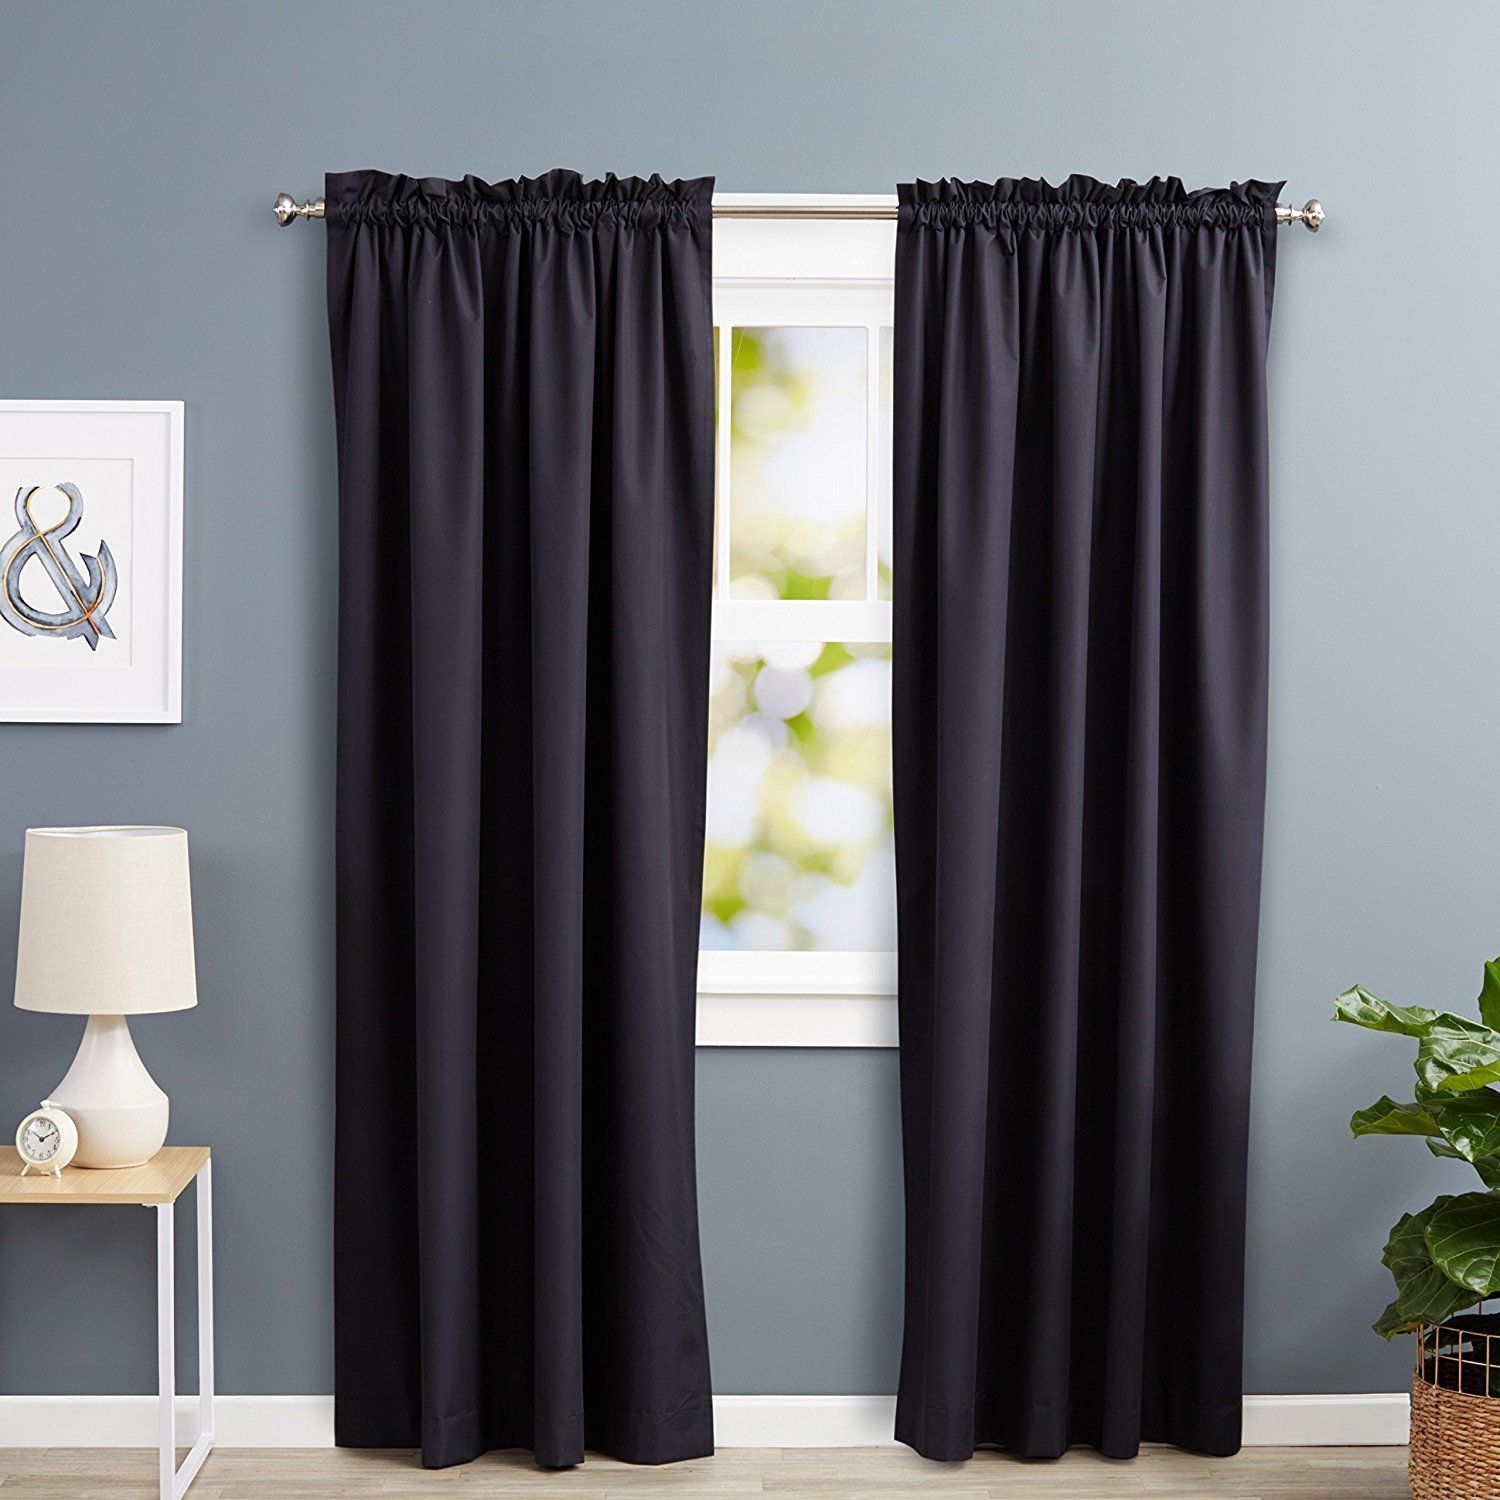 Amazon Basics Room Darkening Thermal Insulating Blackout Curtain Set With  Tie Backs. Amazon. Amazonu0027s Own Blackout Curtains ...